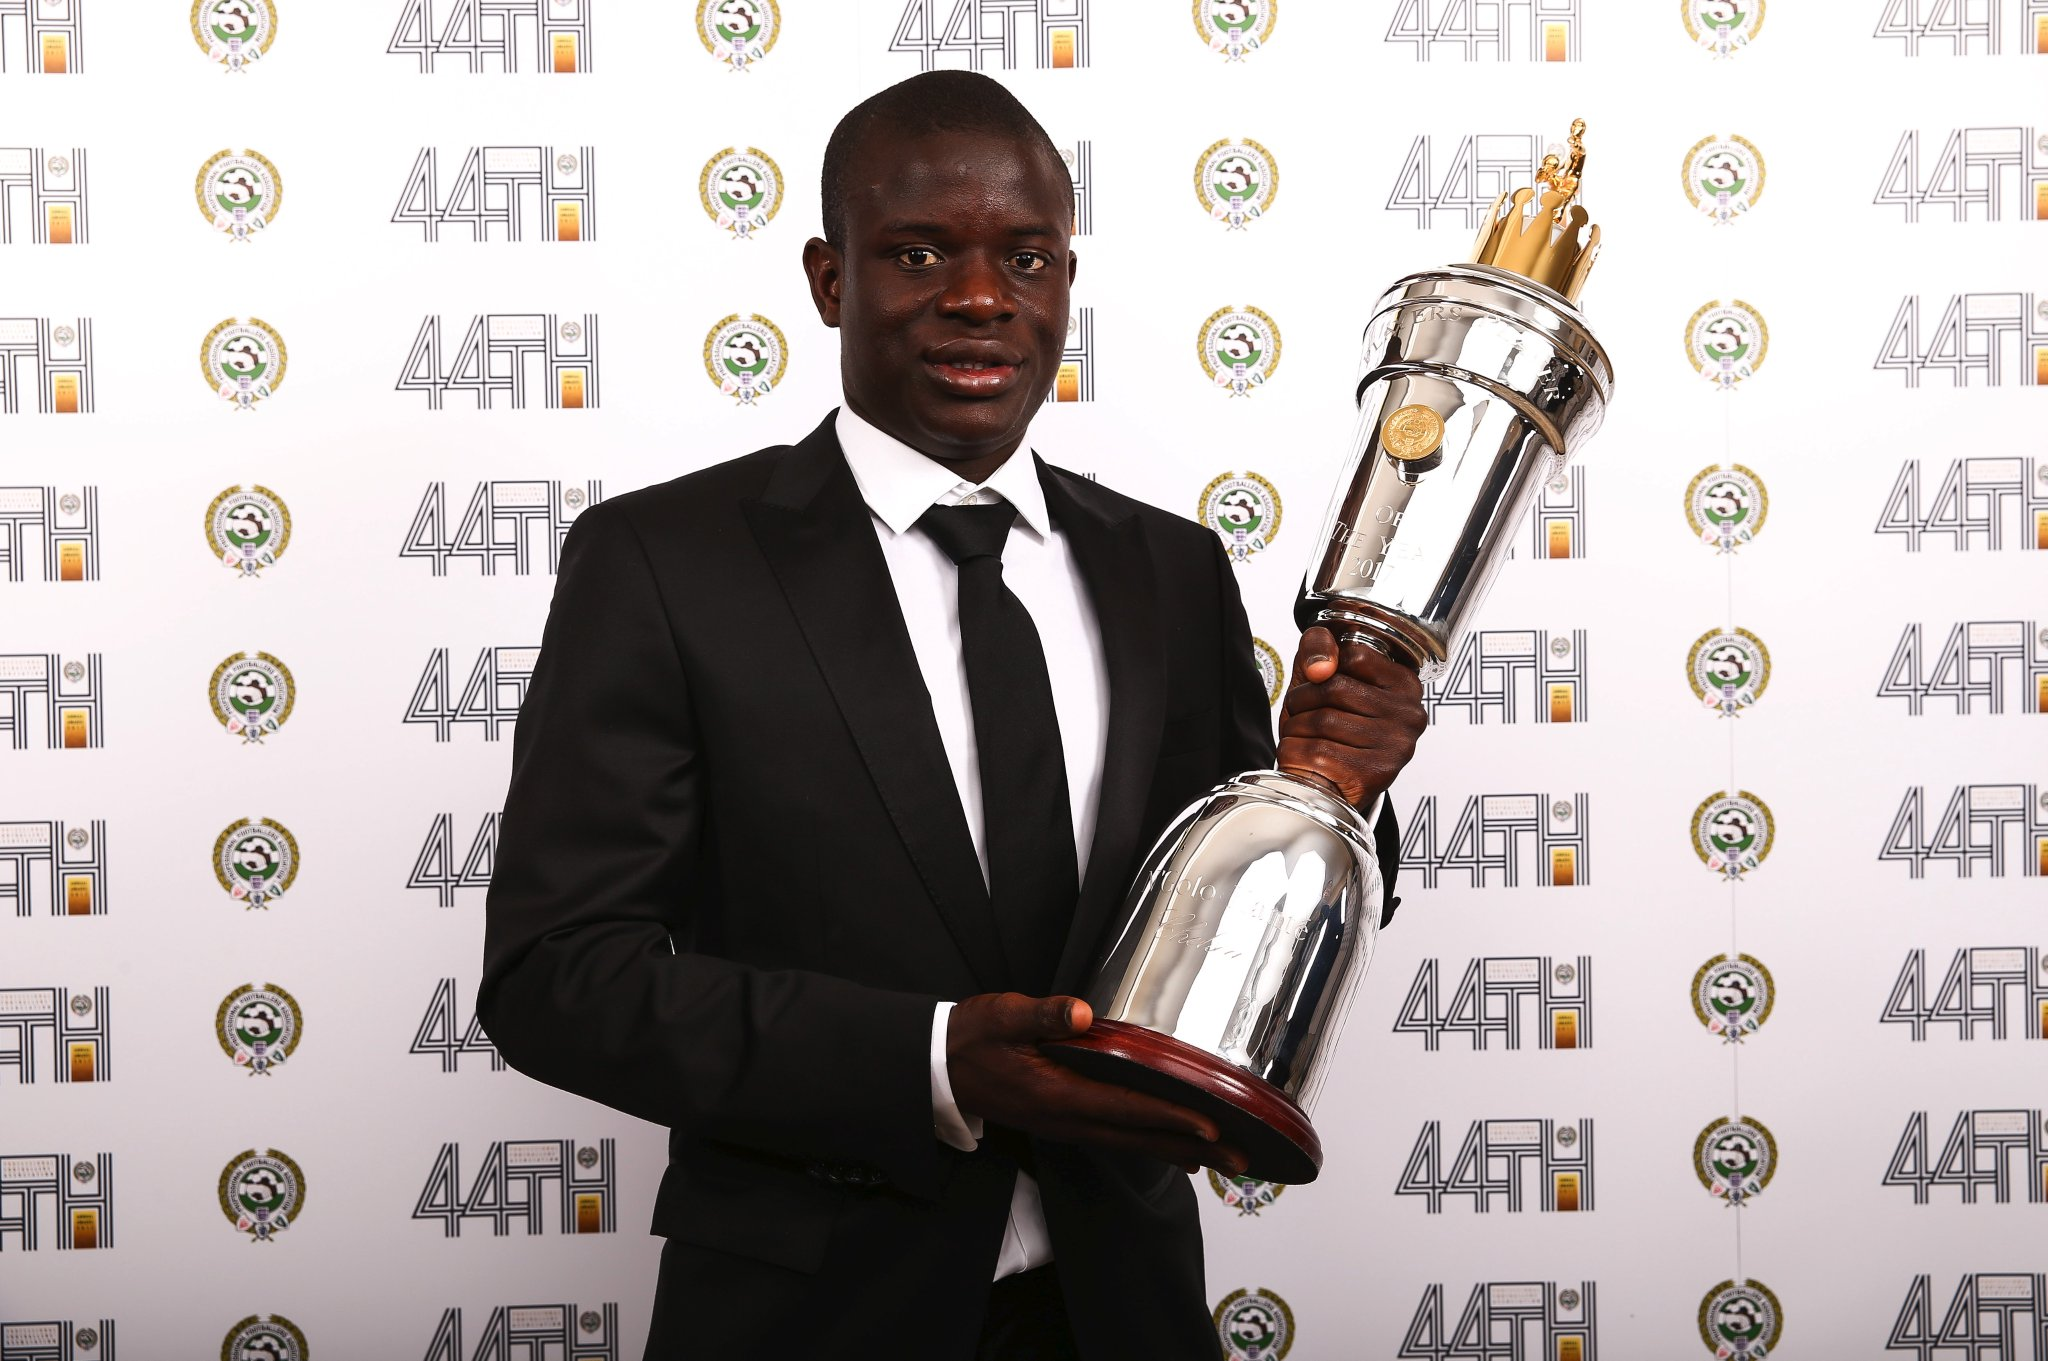 Kante Voted PFA Player Of The Year, Alli Best Young Player